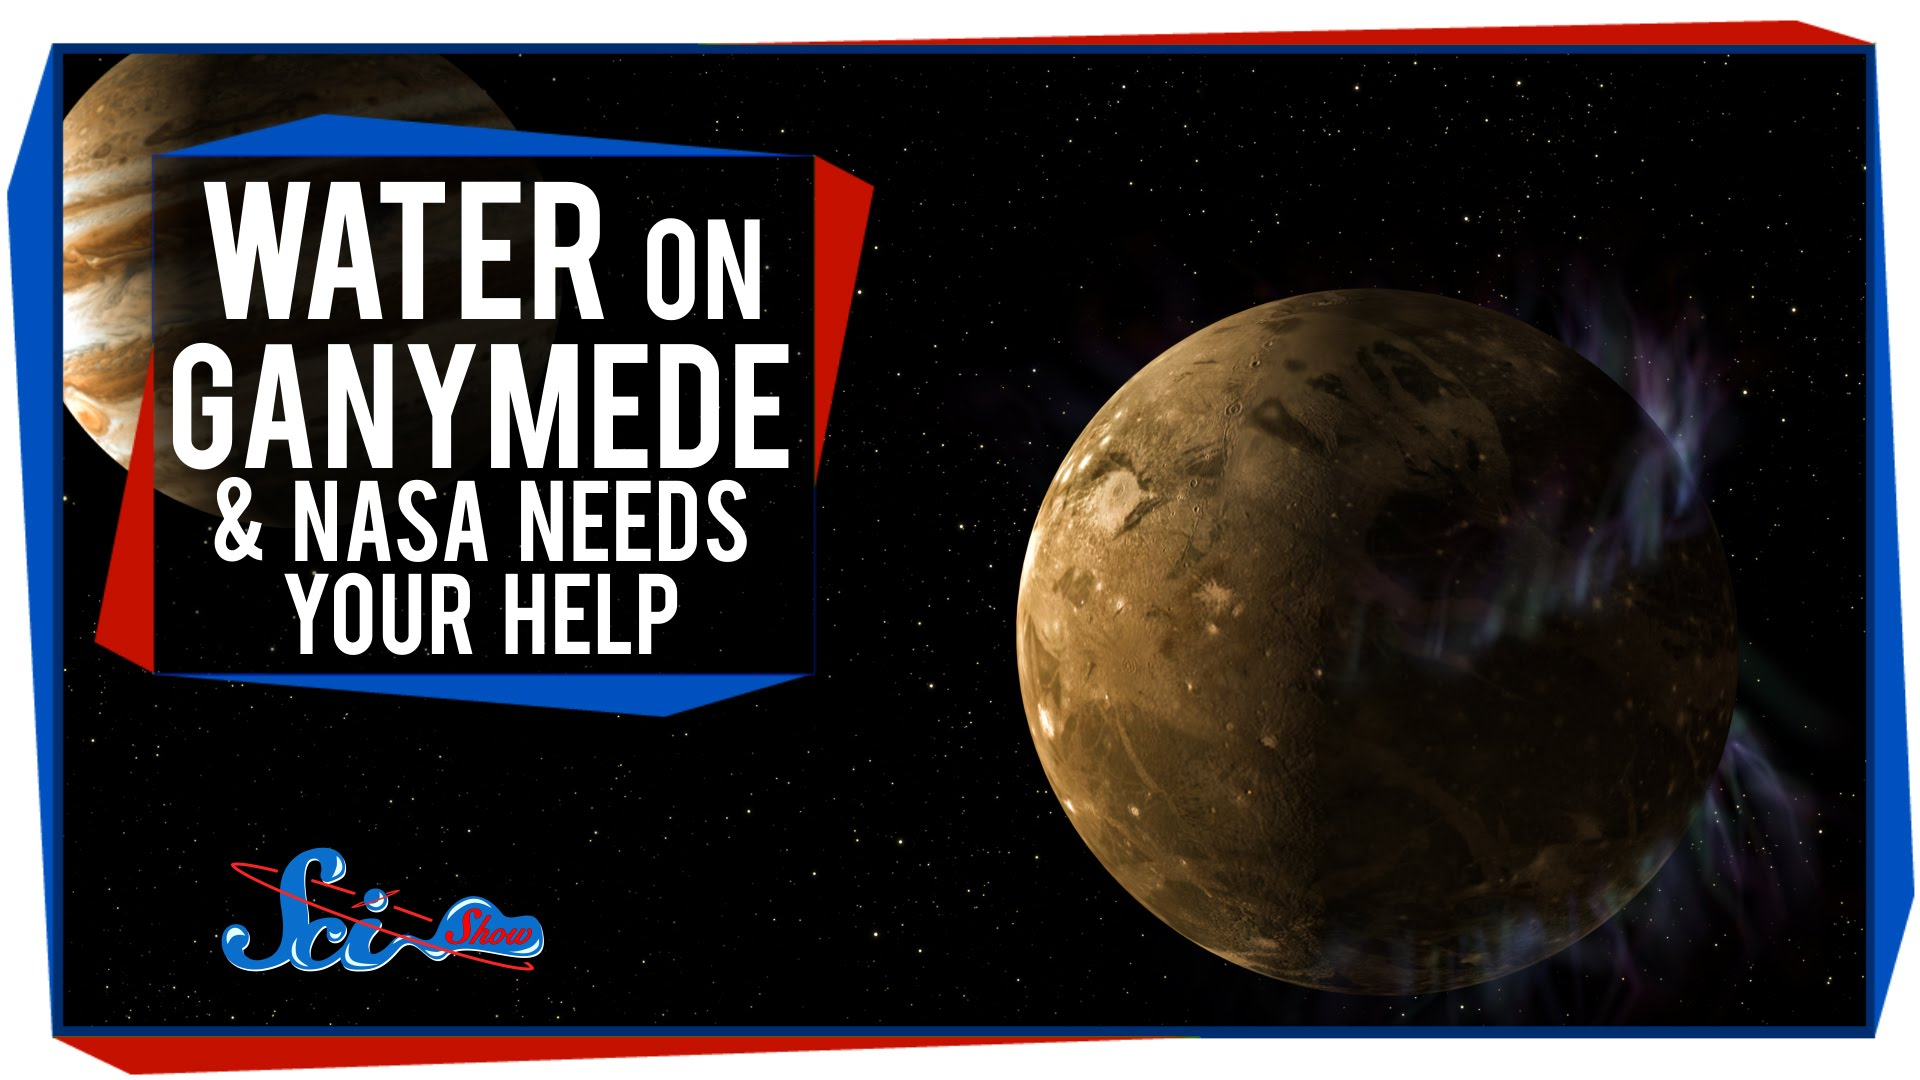 Water on Ganymede, and NASA Needs Your Help